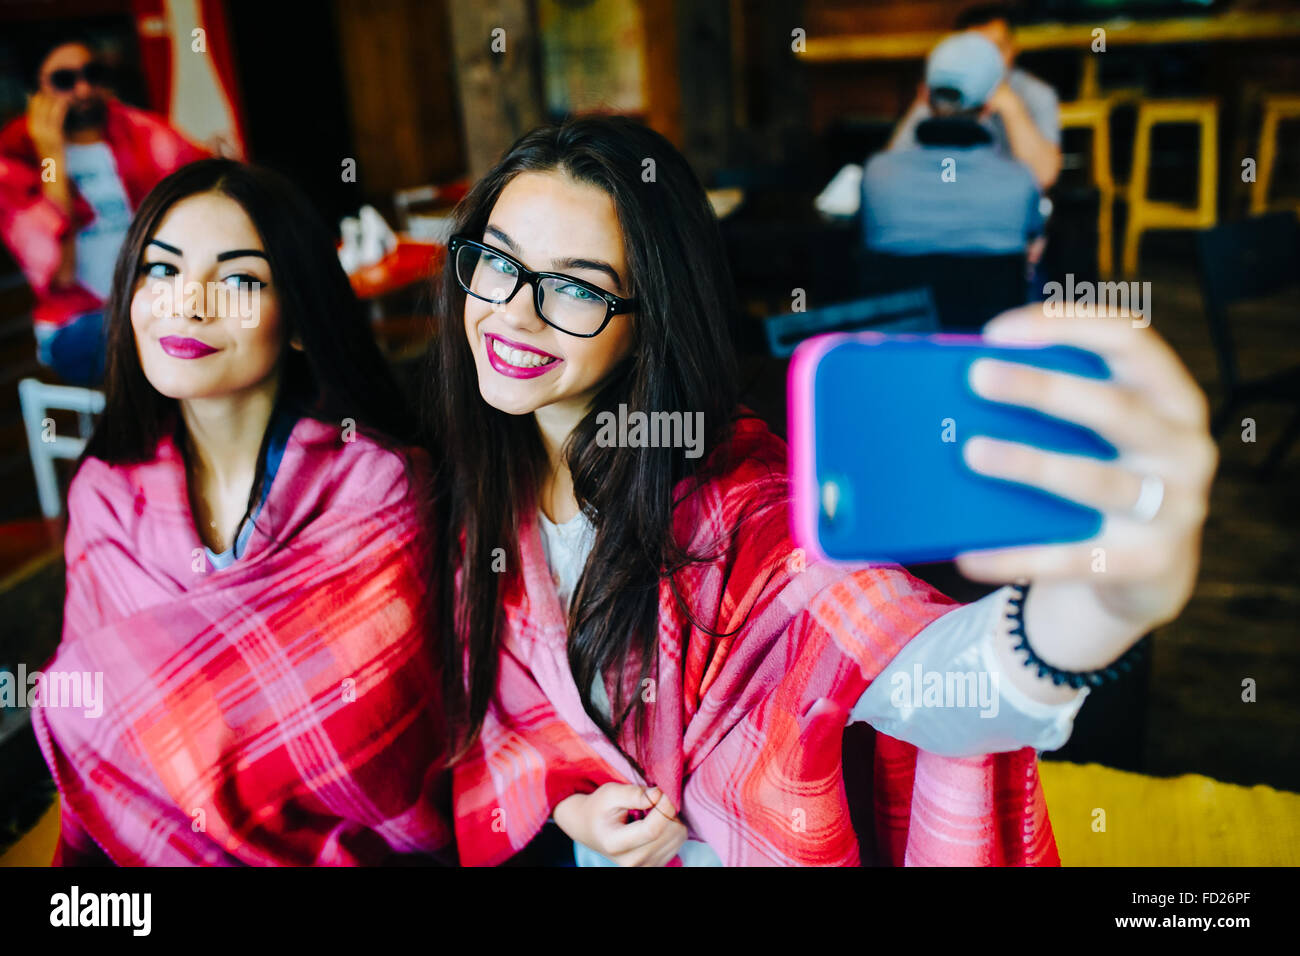 two close friends do selfie in the cafe - Stock Image